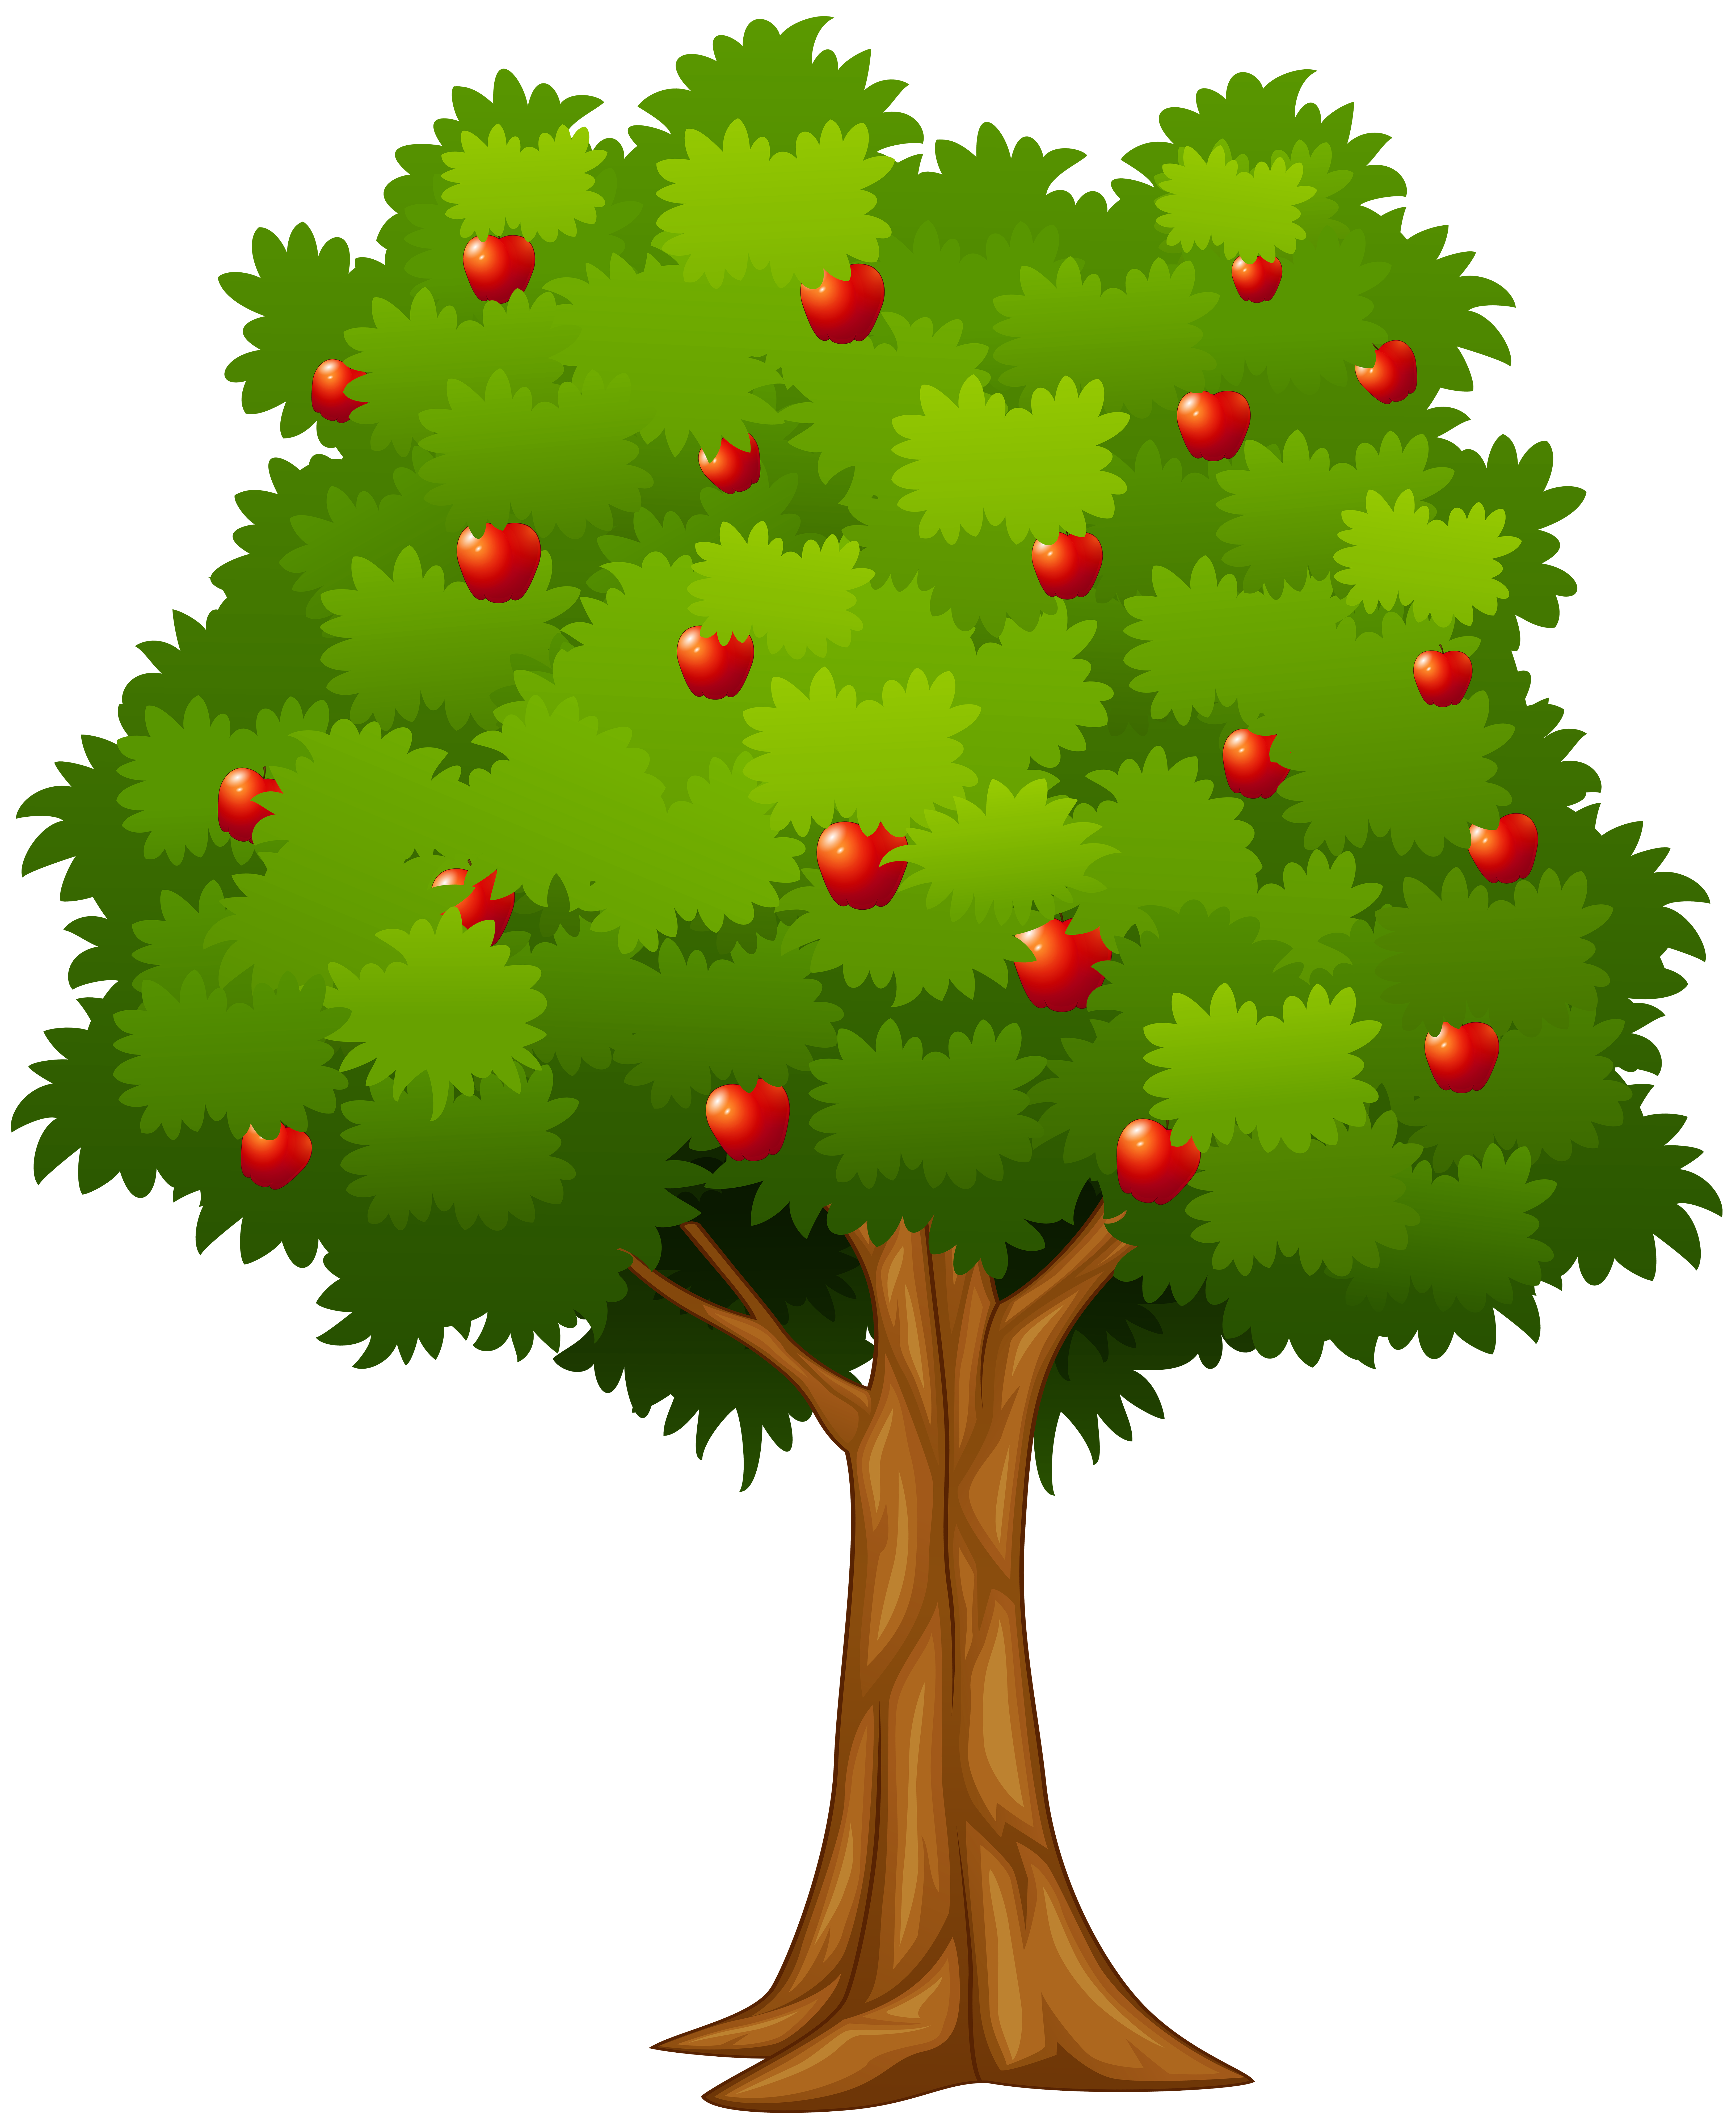 Apple Tree Png Clip Art Image Gallery Yopriceville High Quality Images And Transparent Png Free Clipart Apple Clip Art Apple Tree Fruit Coloring Pages